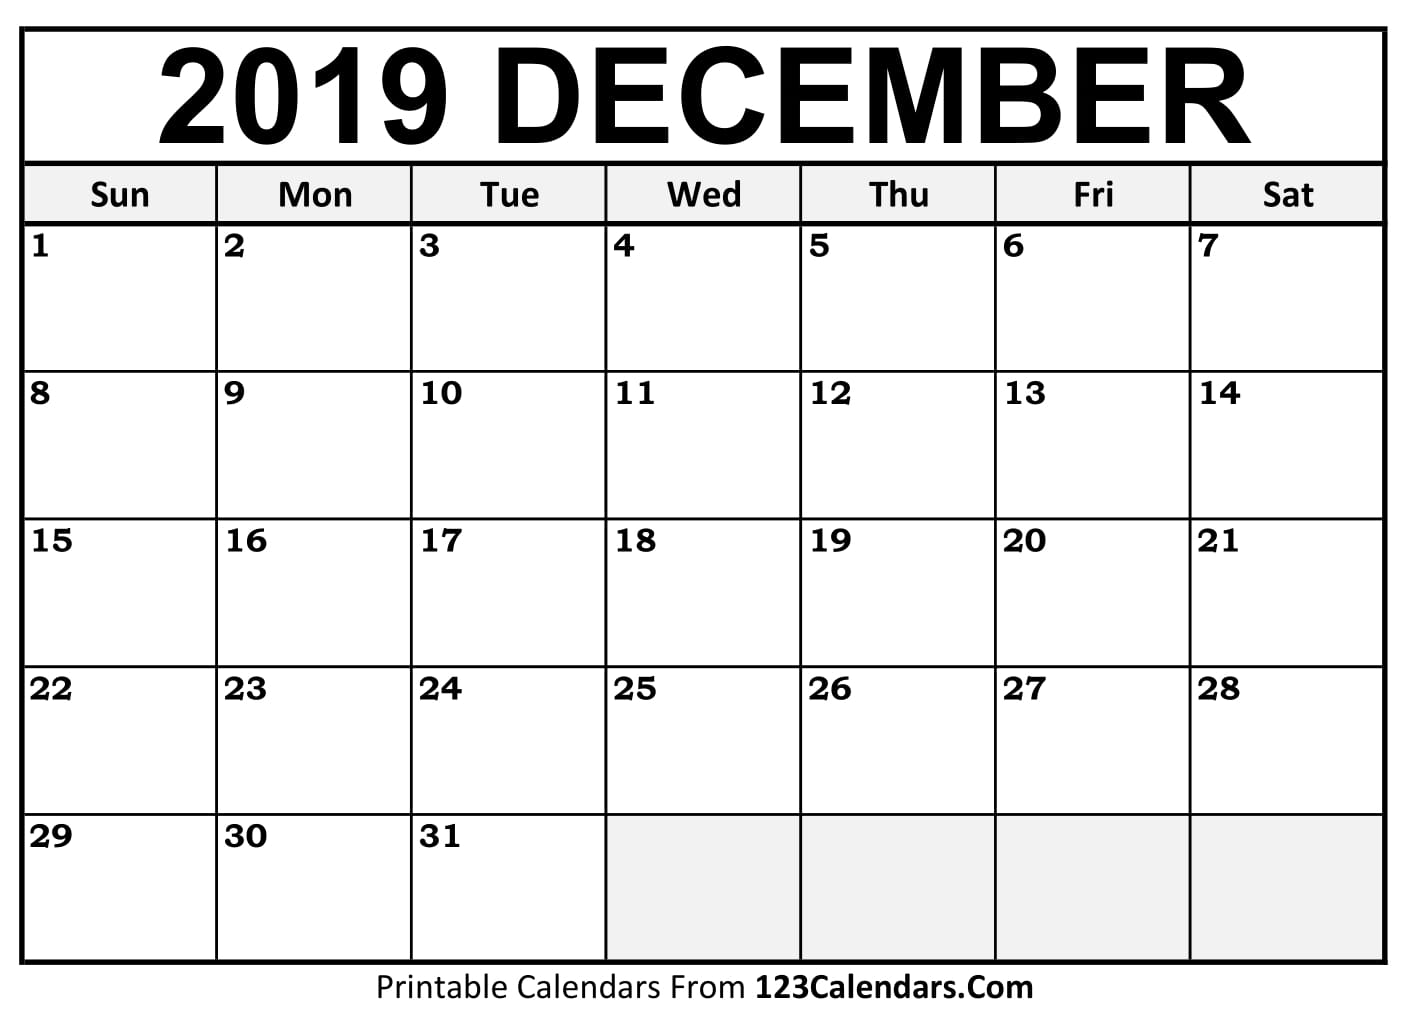 picture about Printable Calendar Dec named December 2019 Printable Calendar